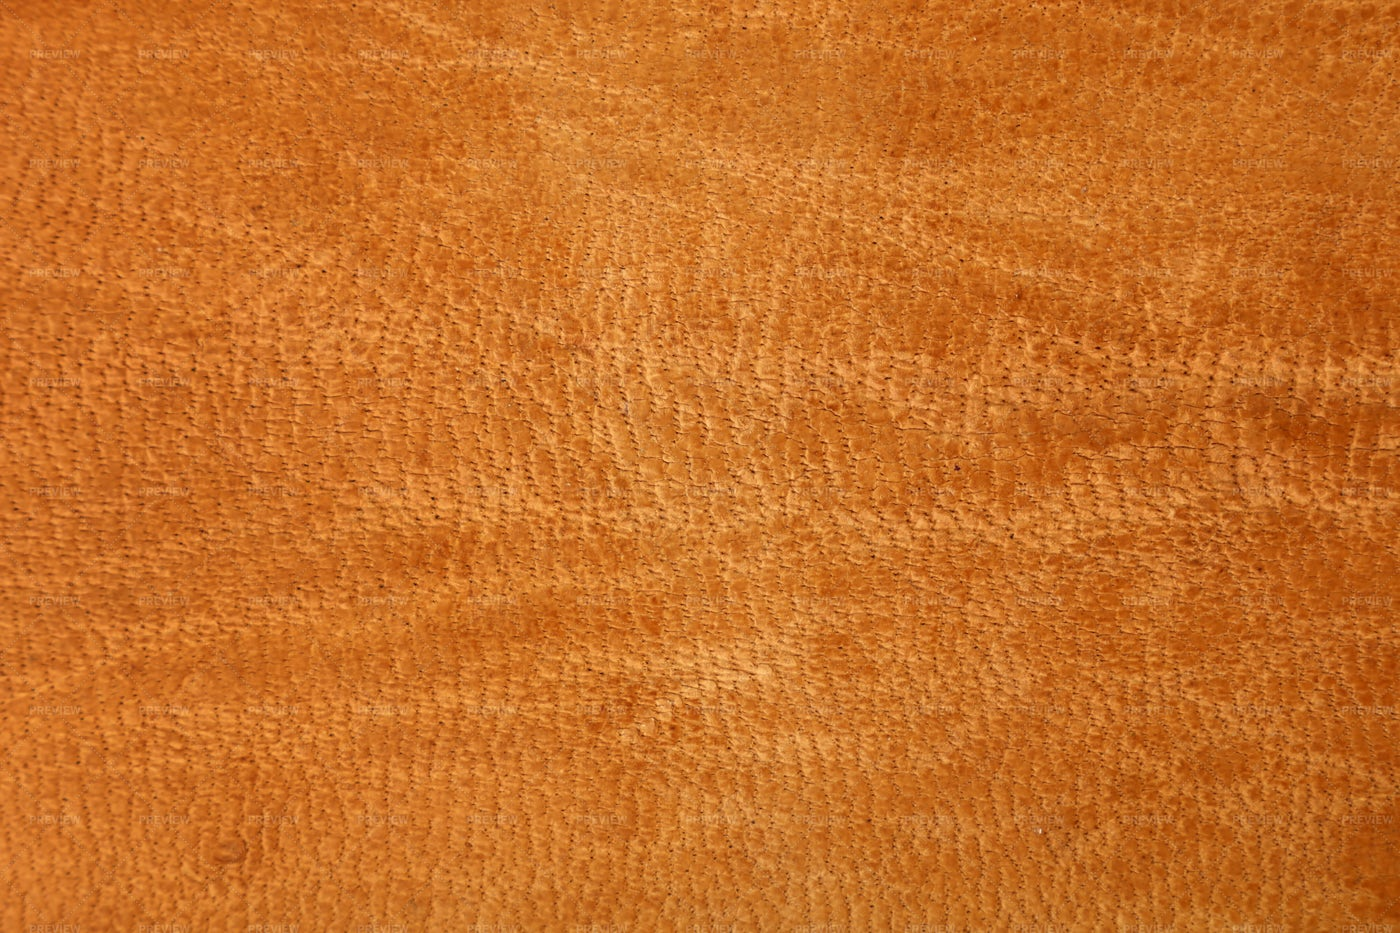 Brown Leather Background: Stock Photos